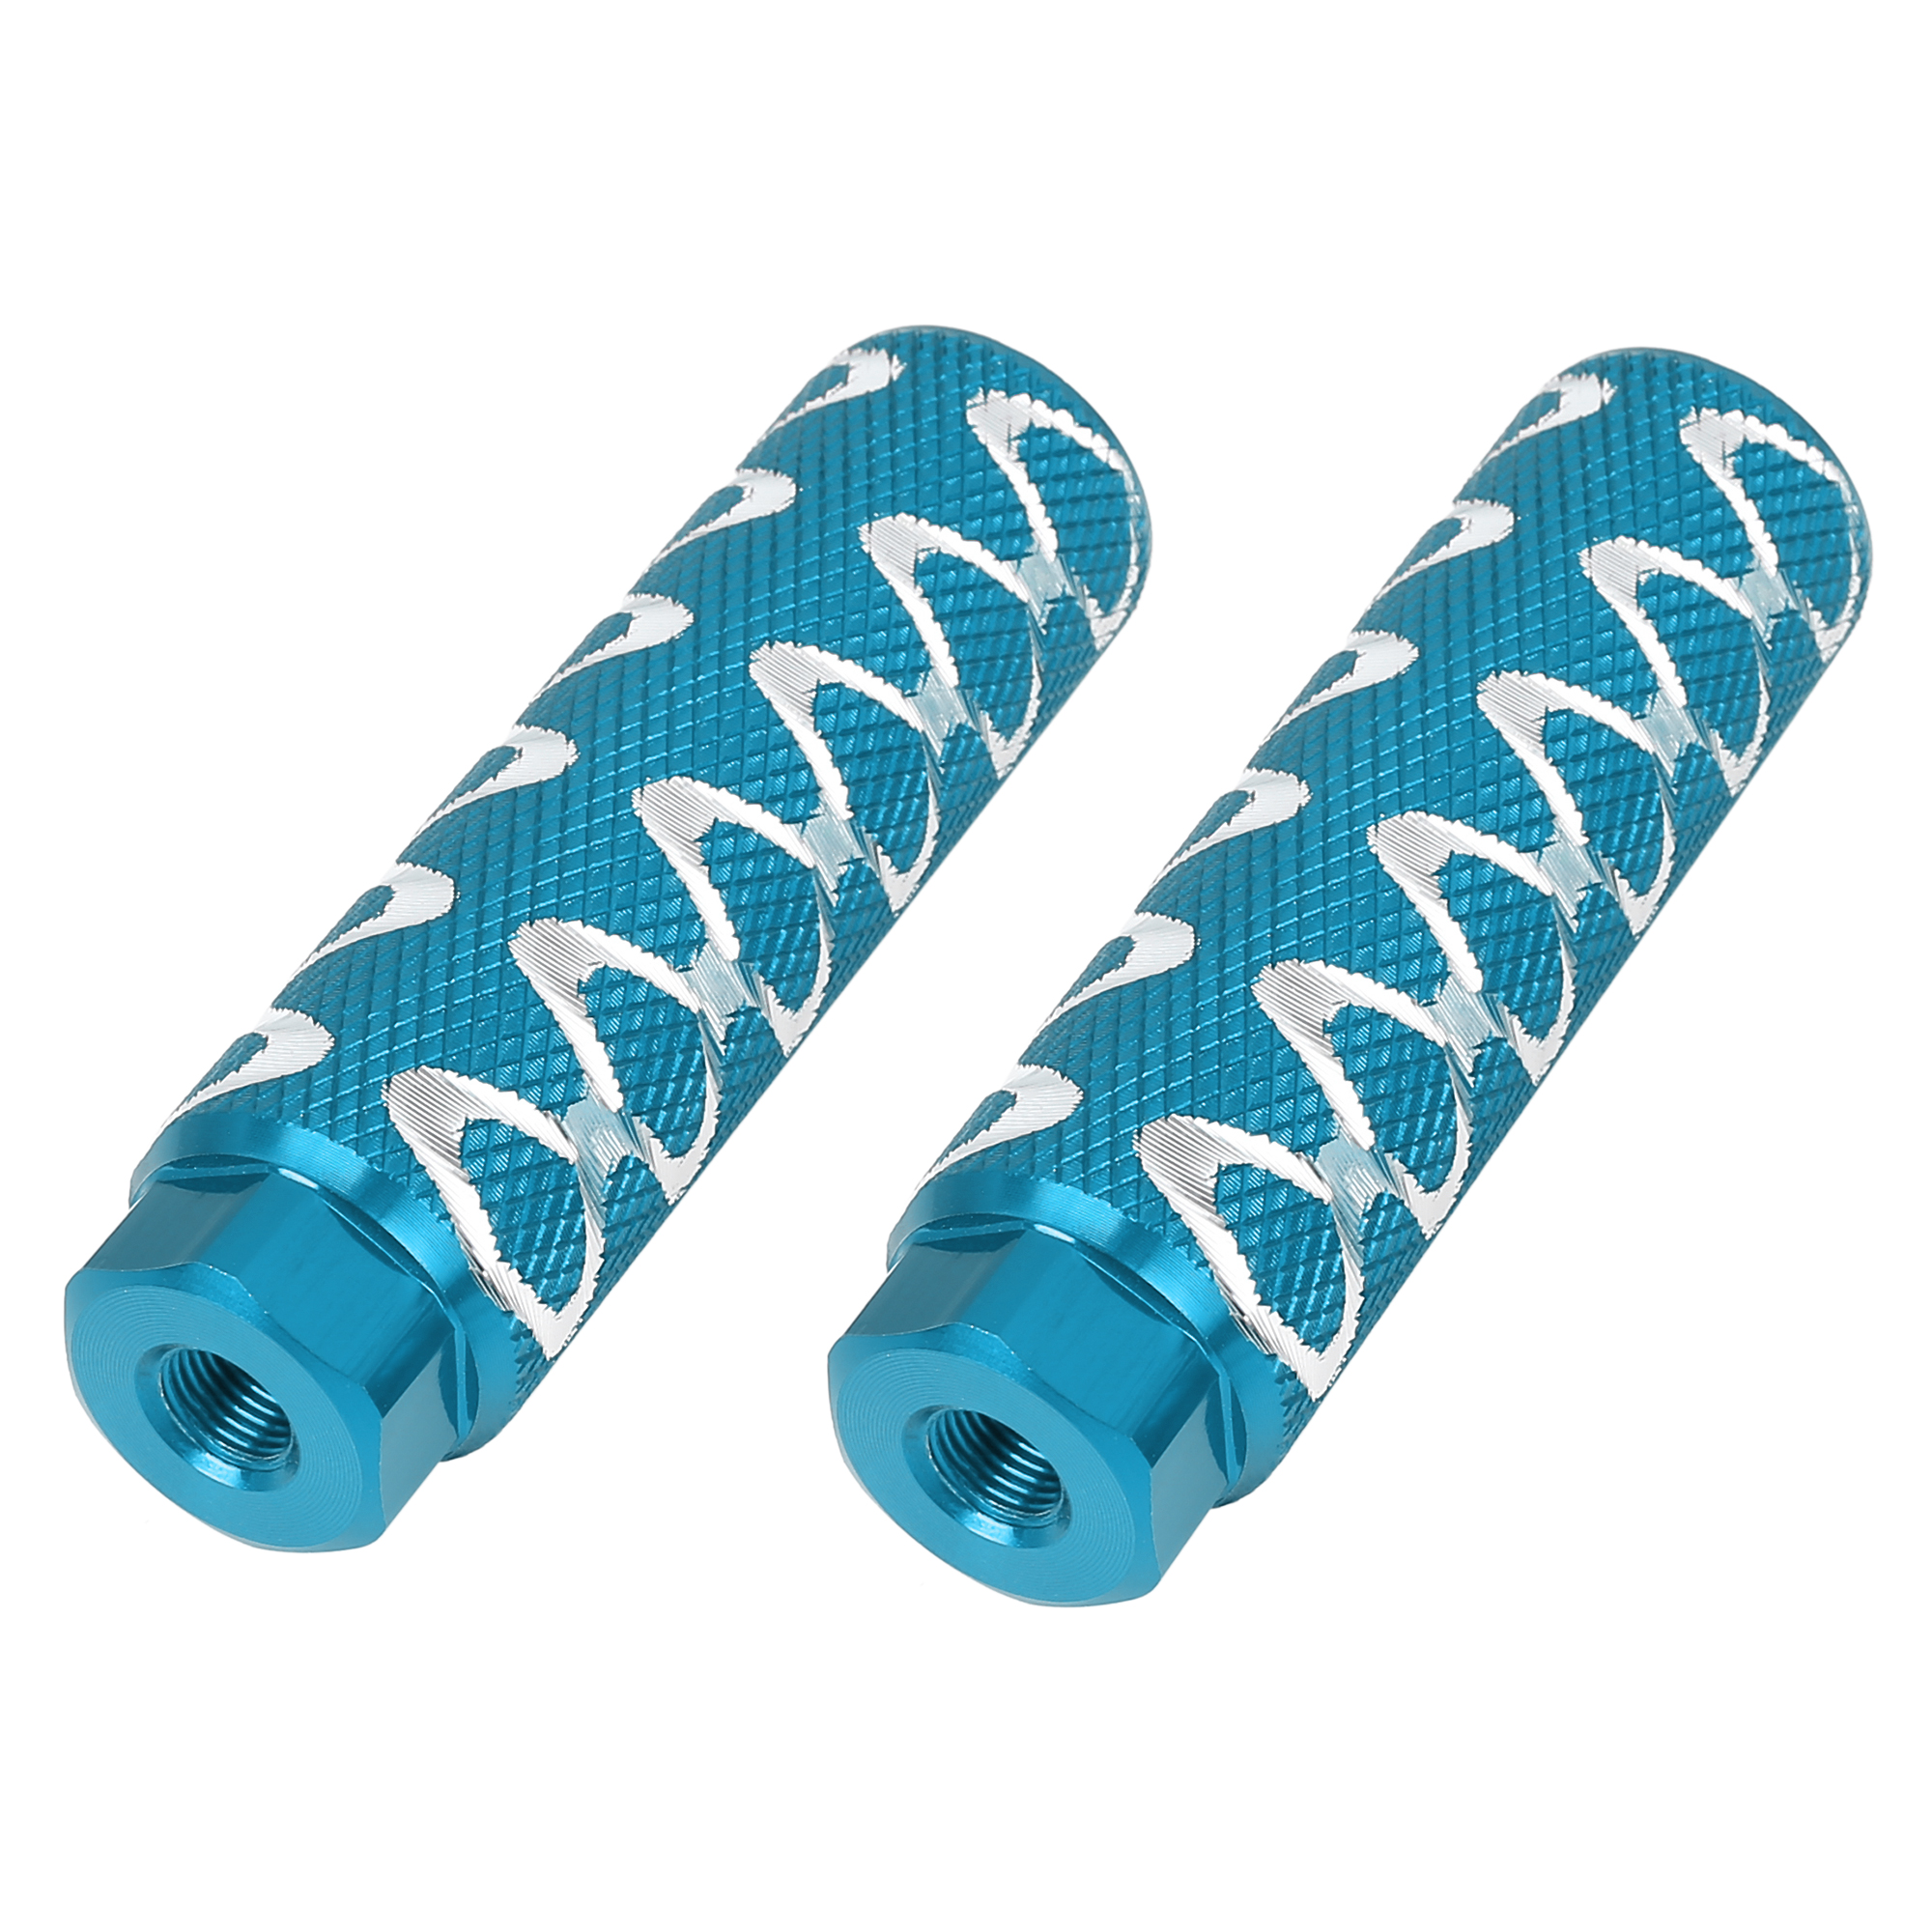 Pair Round Wave Stripes Bike Foot Pegs Fit 3/8 Inch 100x28mm Sky Blue